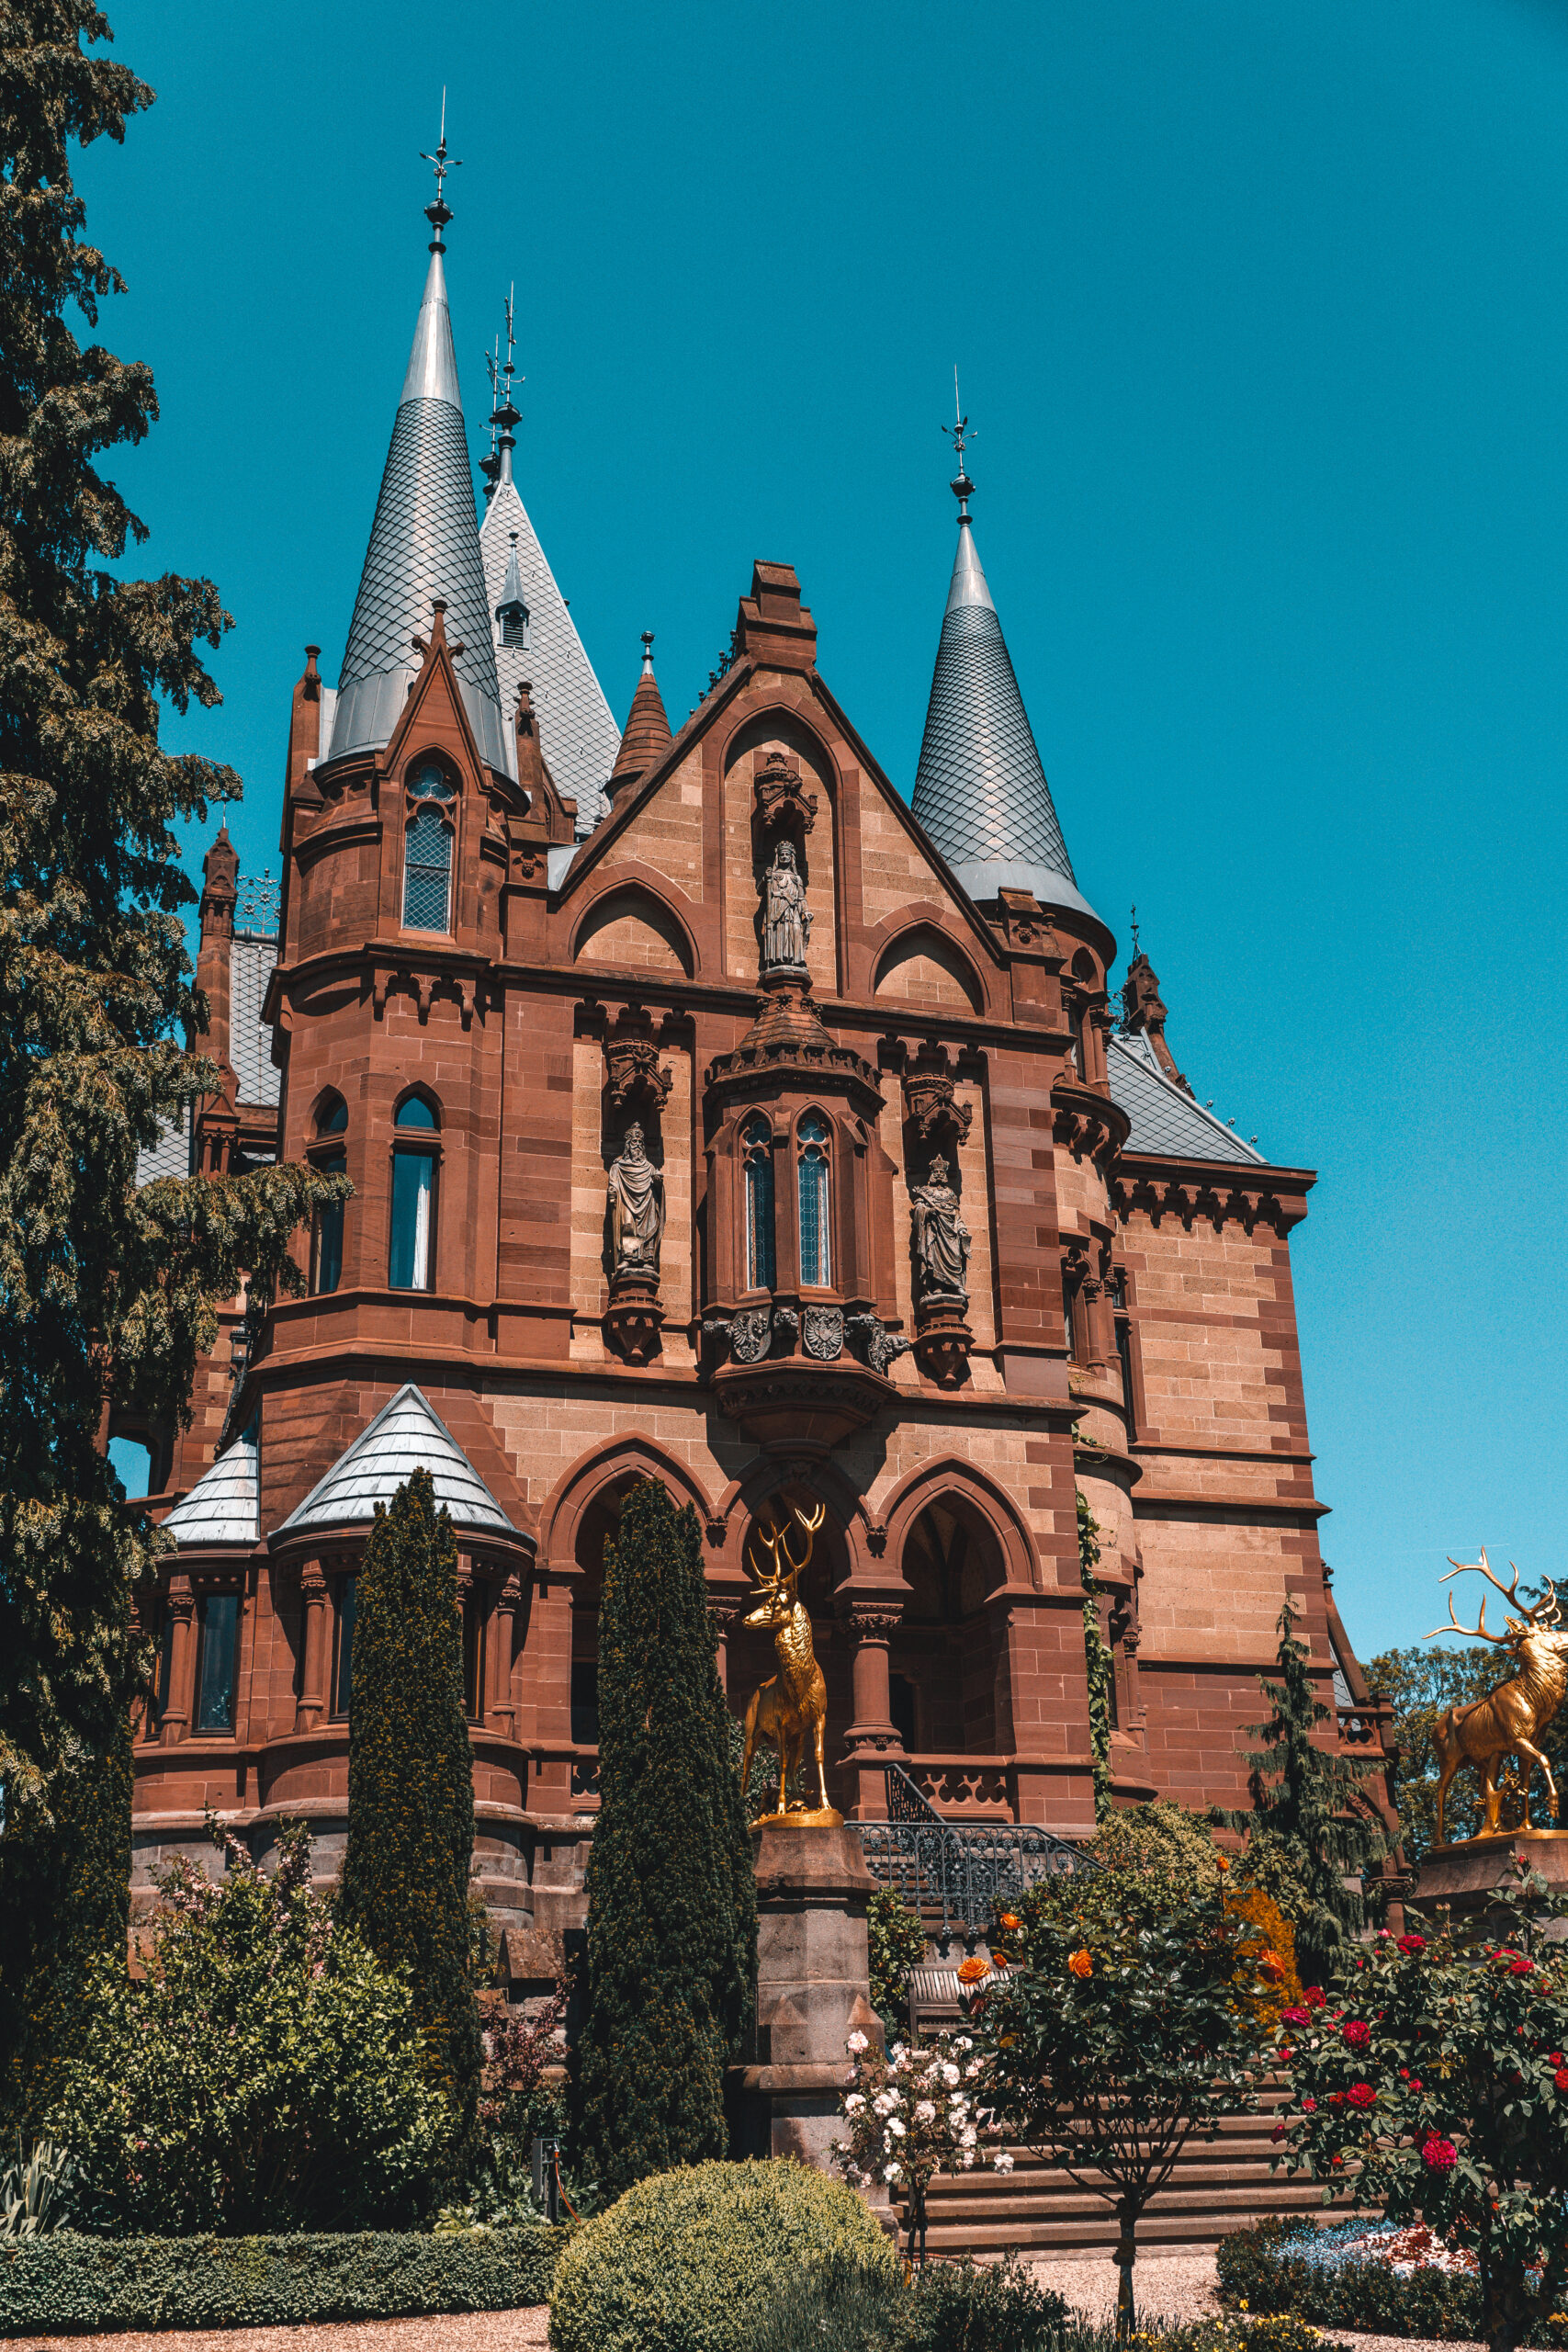 A complete guide to Drachenburg Castle in Germany